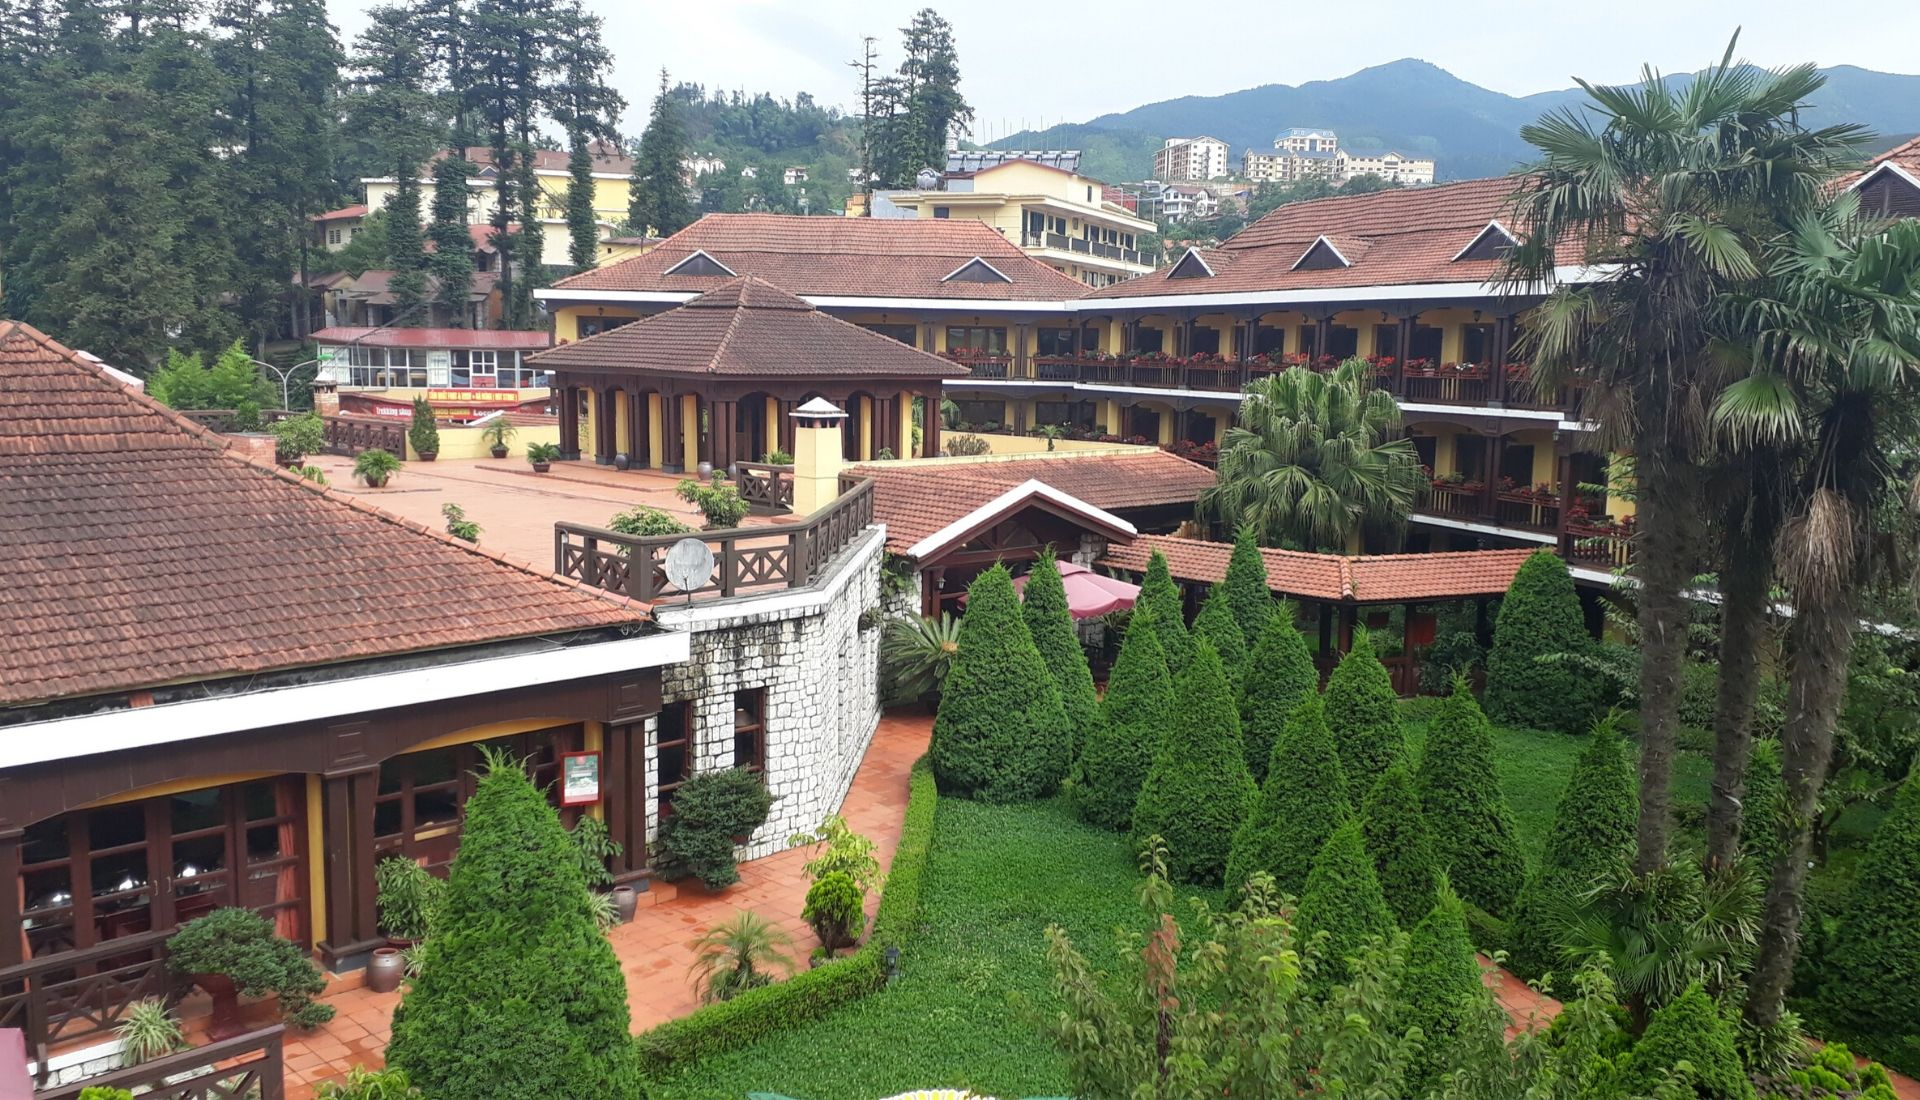 Victoria Sapa resort